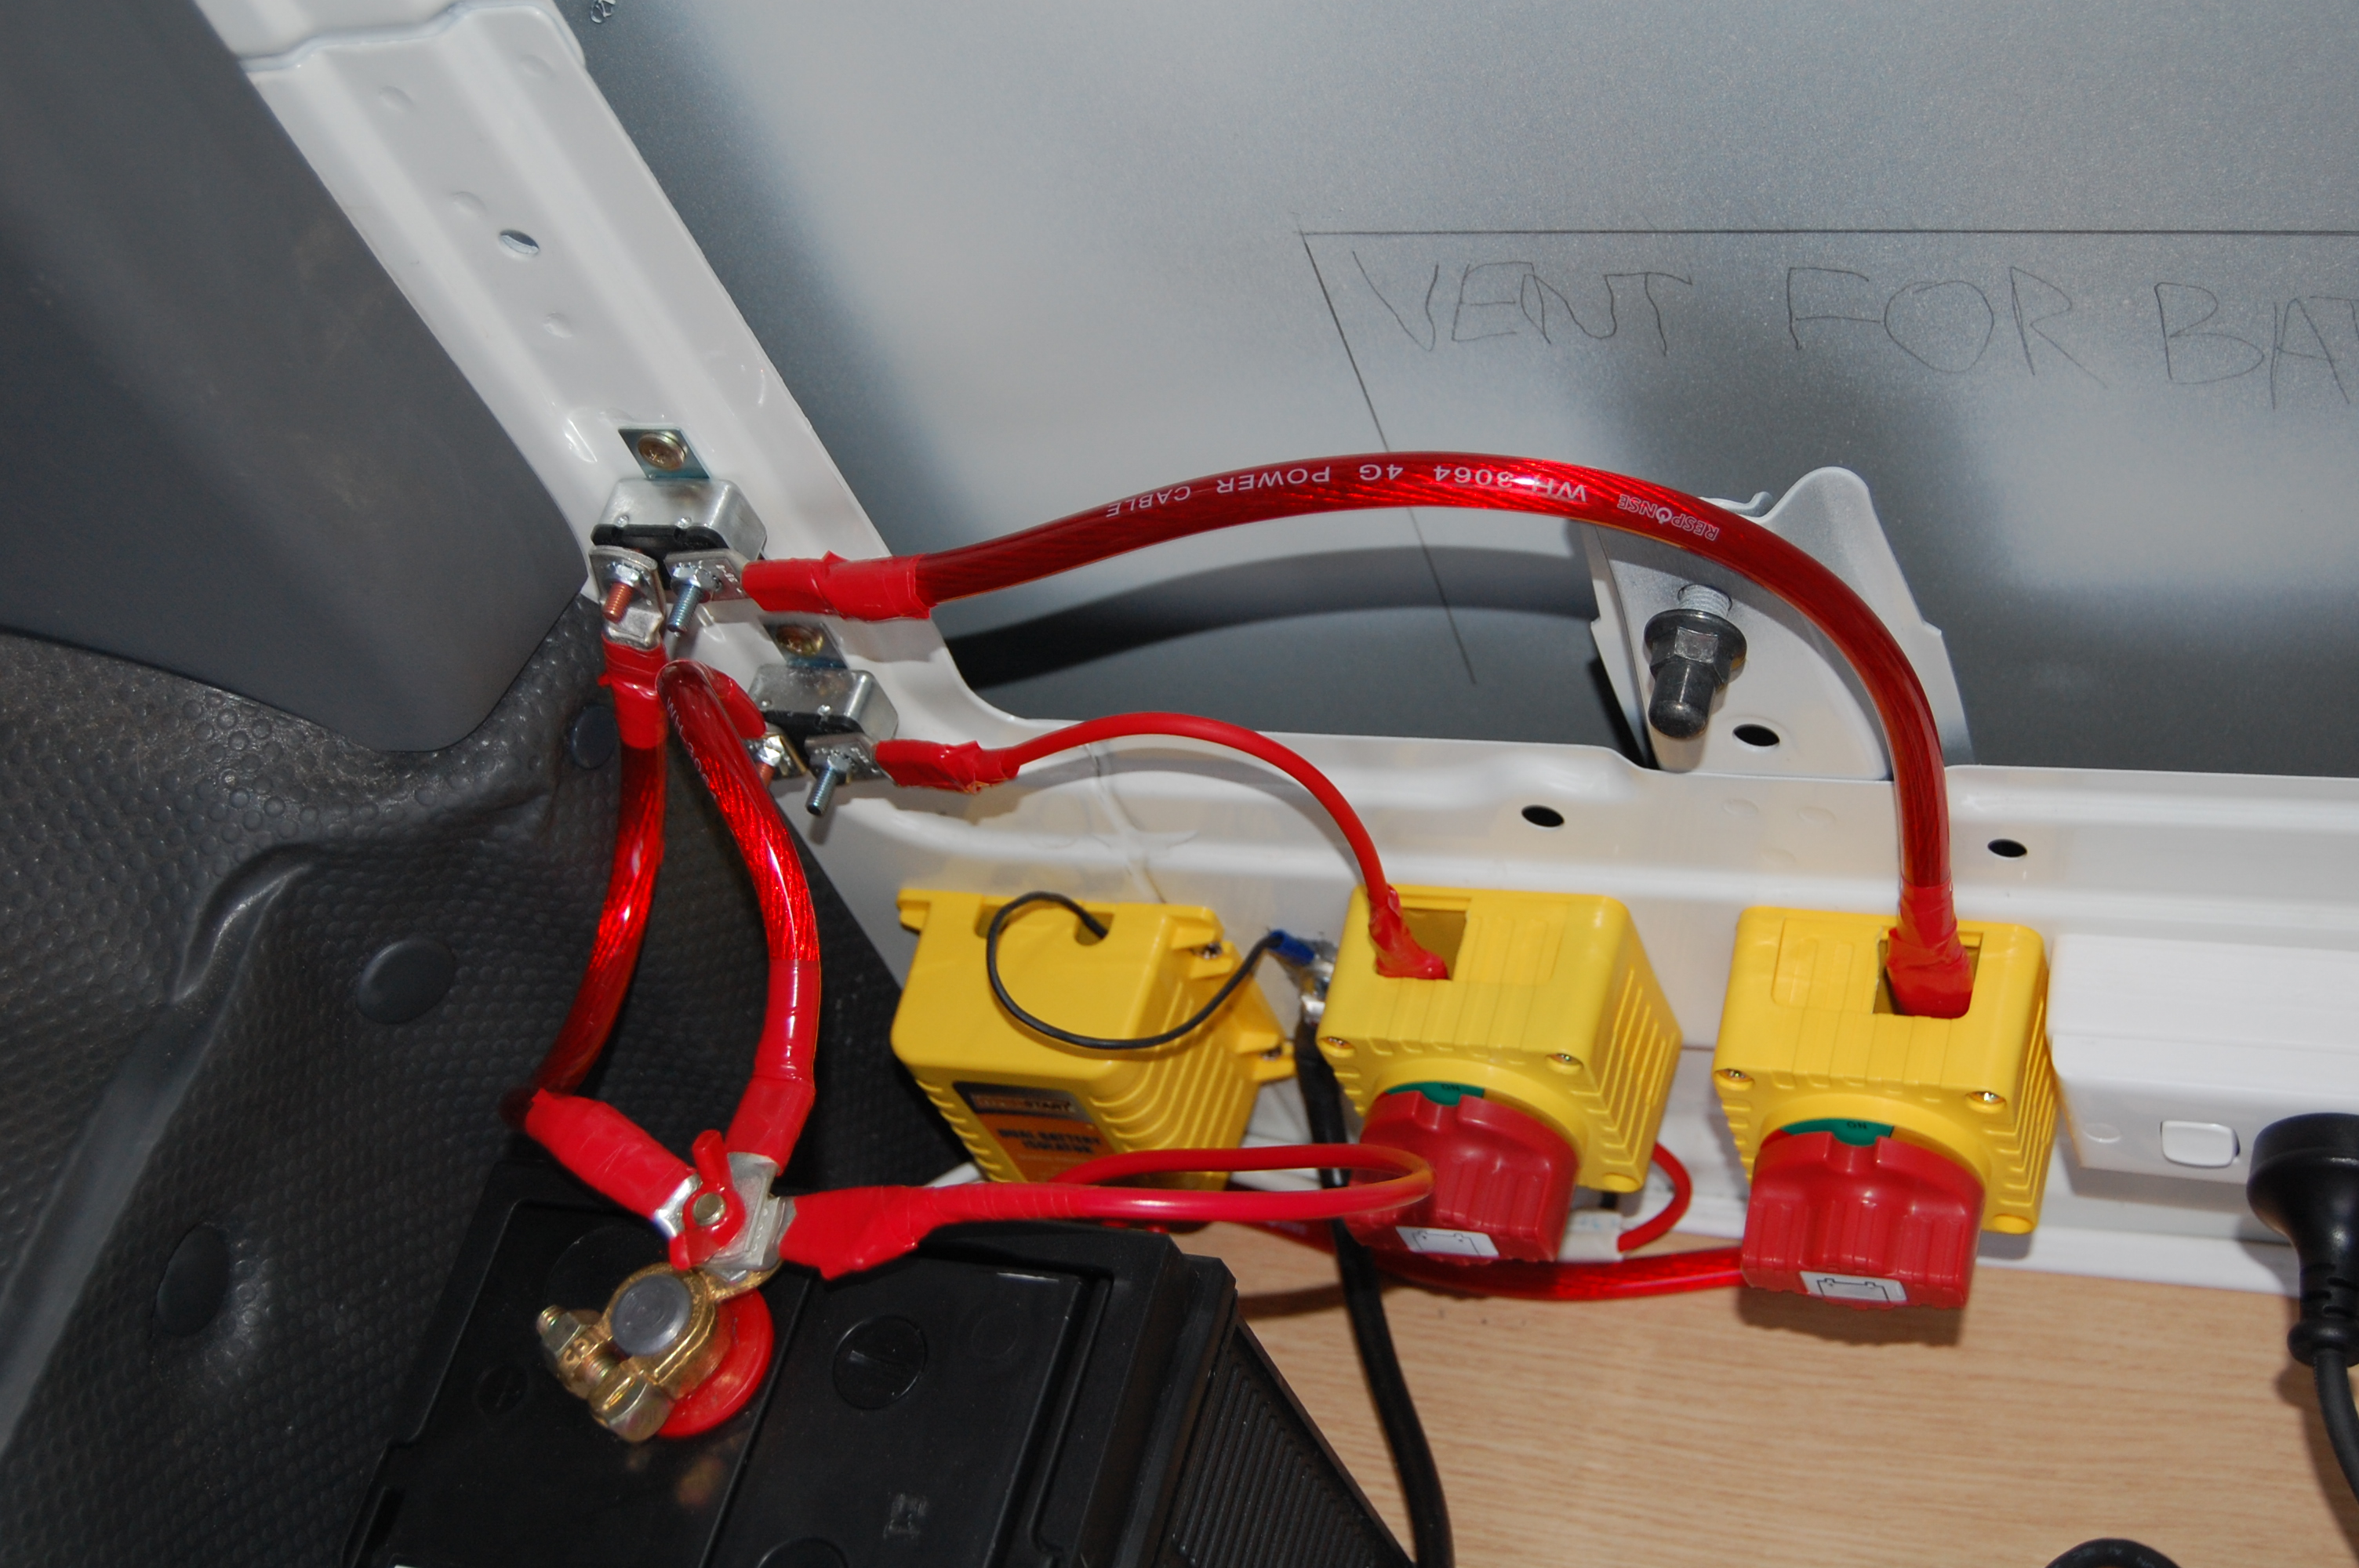 Wiring A Campervan The Converts Connecting Three Lights And Supply Cable At Light Switch So